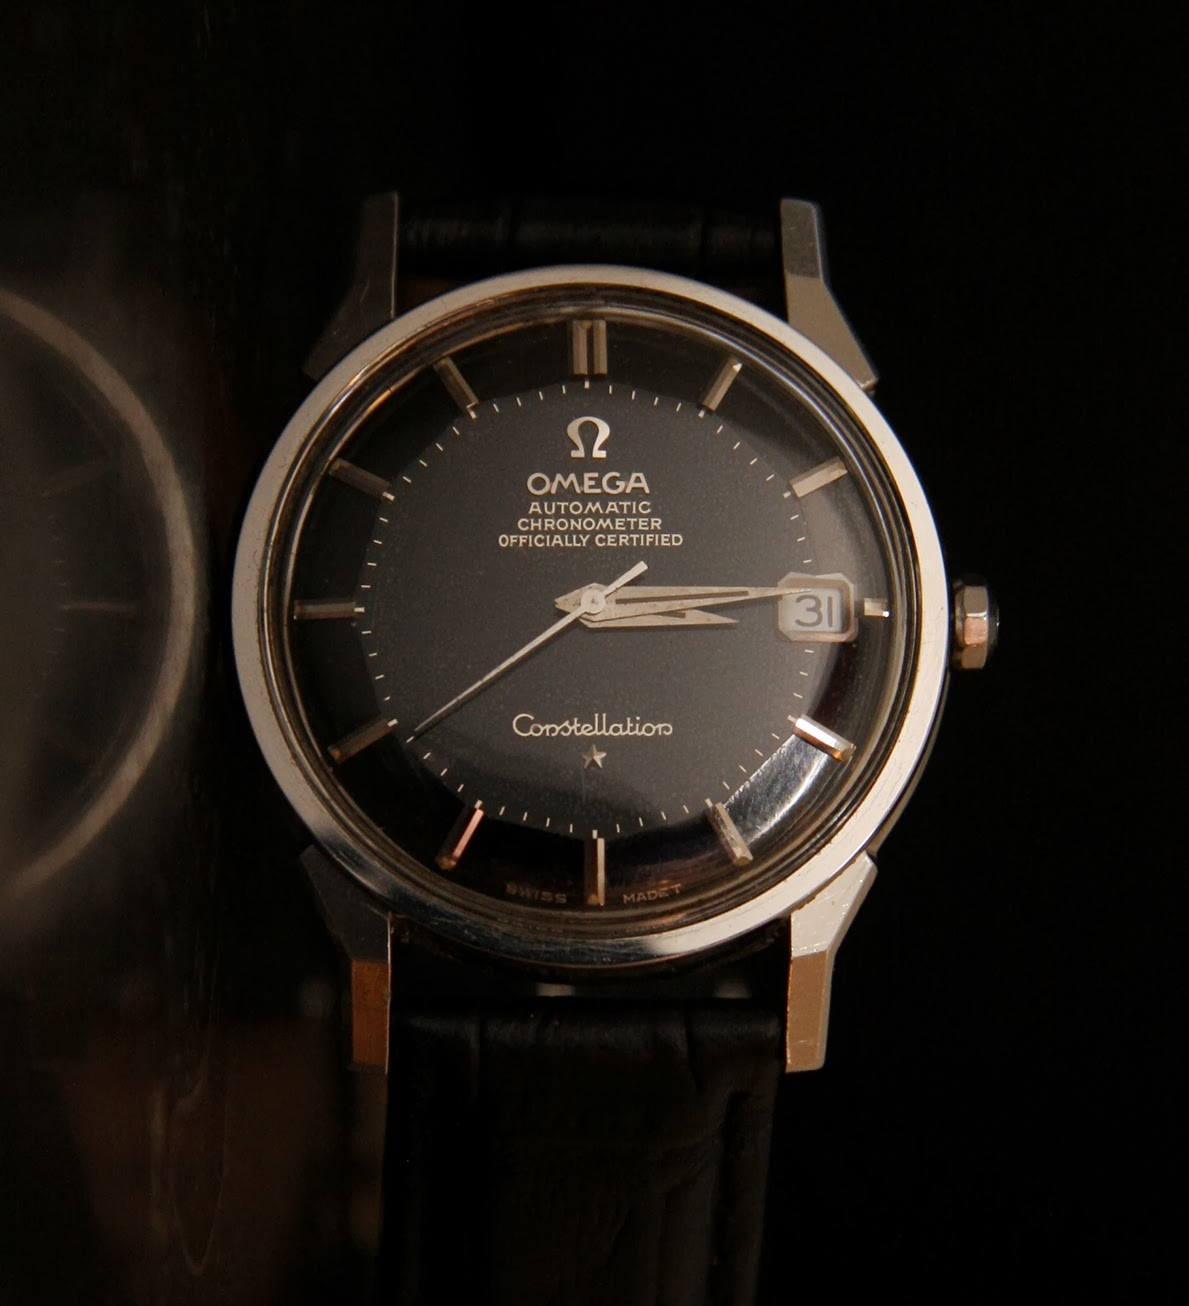 omega constellation user manual one more soul rh onemoresoul com omega constellation made in japan omega constellation manual pdf